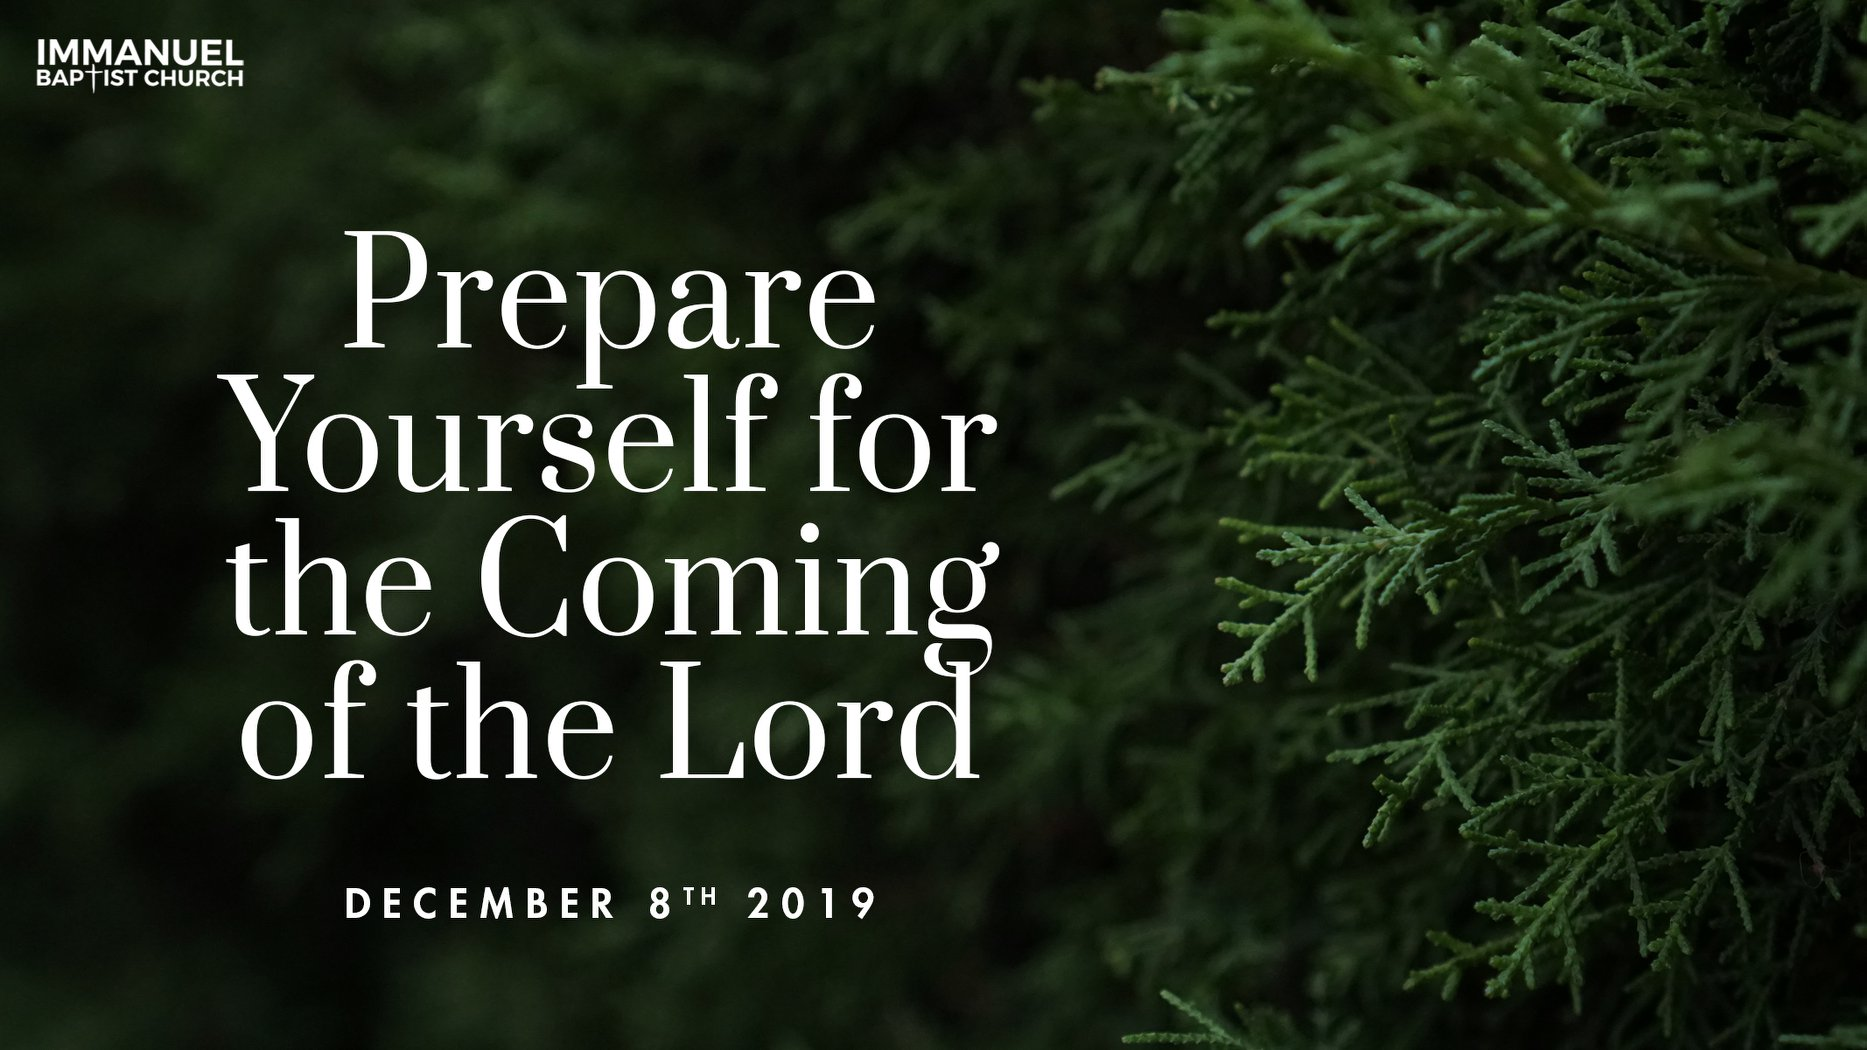 Preparing Yourself for the Coming of the Lord